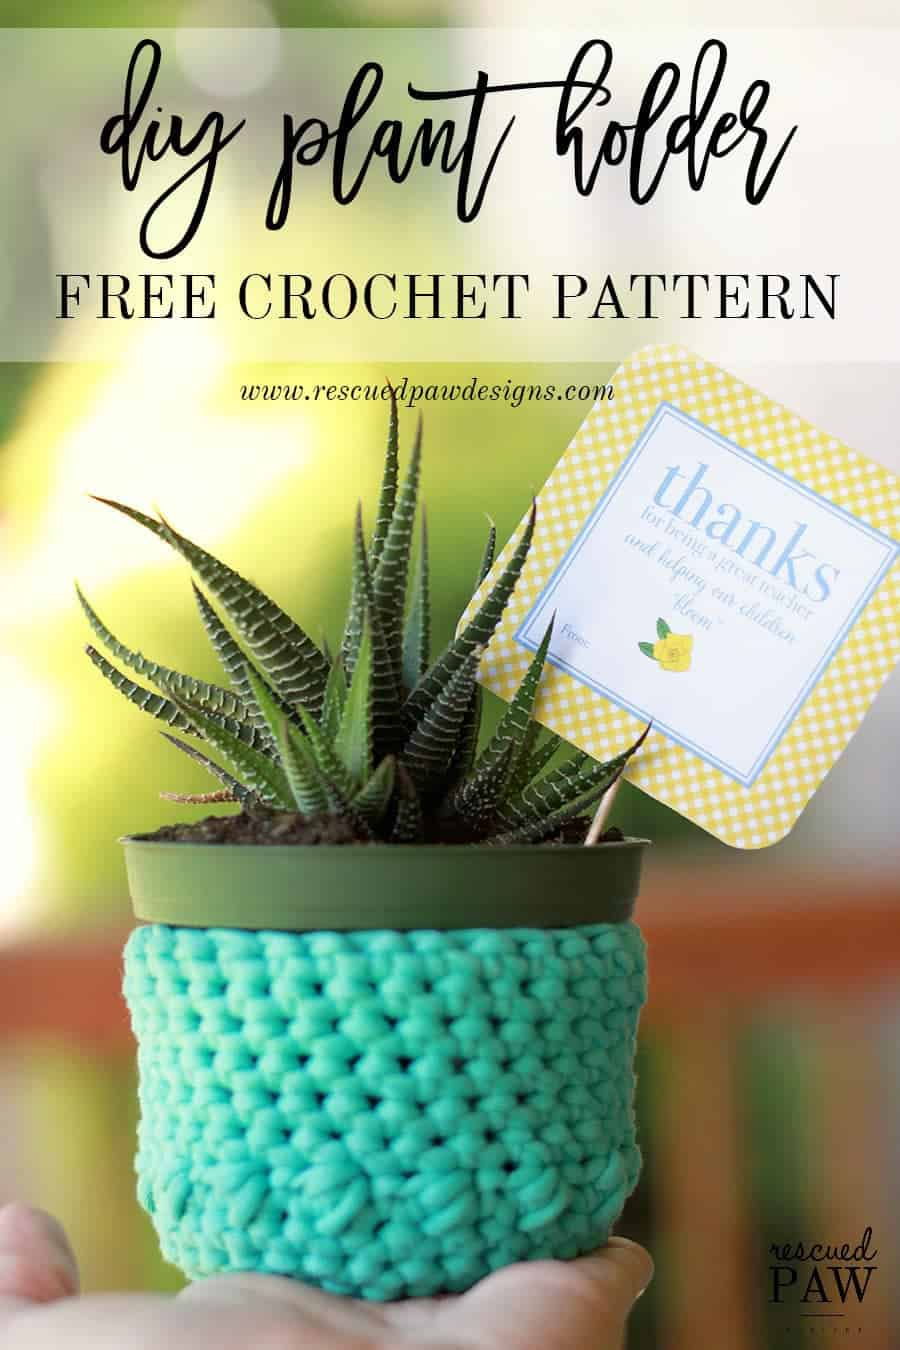 DIY Crochet Plant Holder Pattern by Rescued Paw Designs - Makes a great Teachers Gift for the end of the year and even as a teacher appreciation gift! Use any kind of plant for a special handmade gift that will last! www.rescuedpawdesigns.com